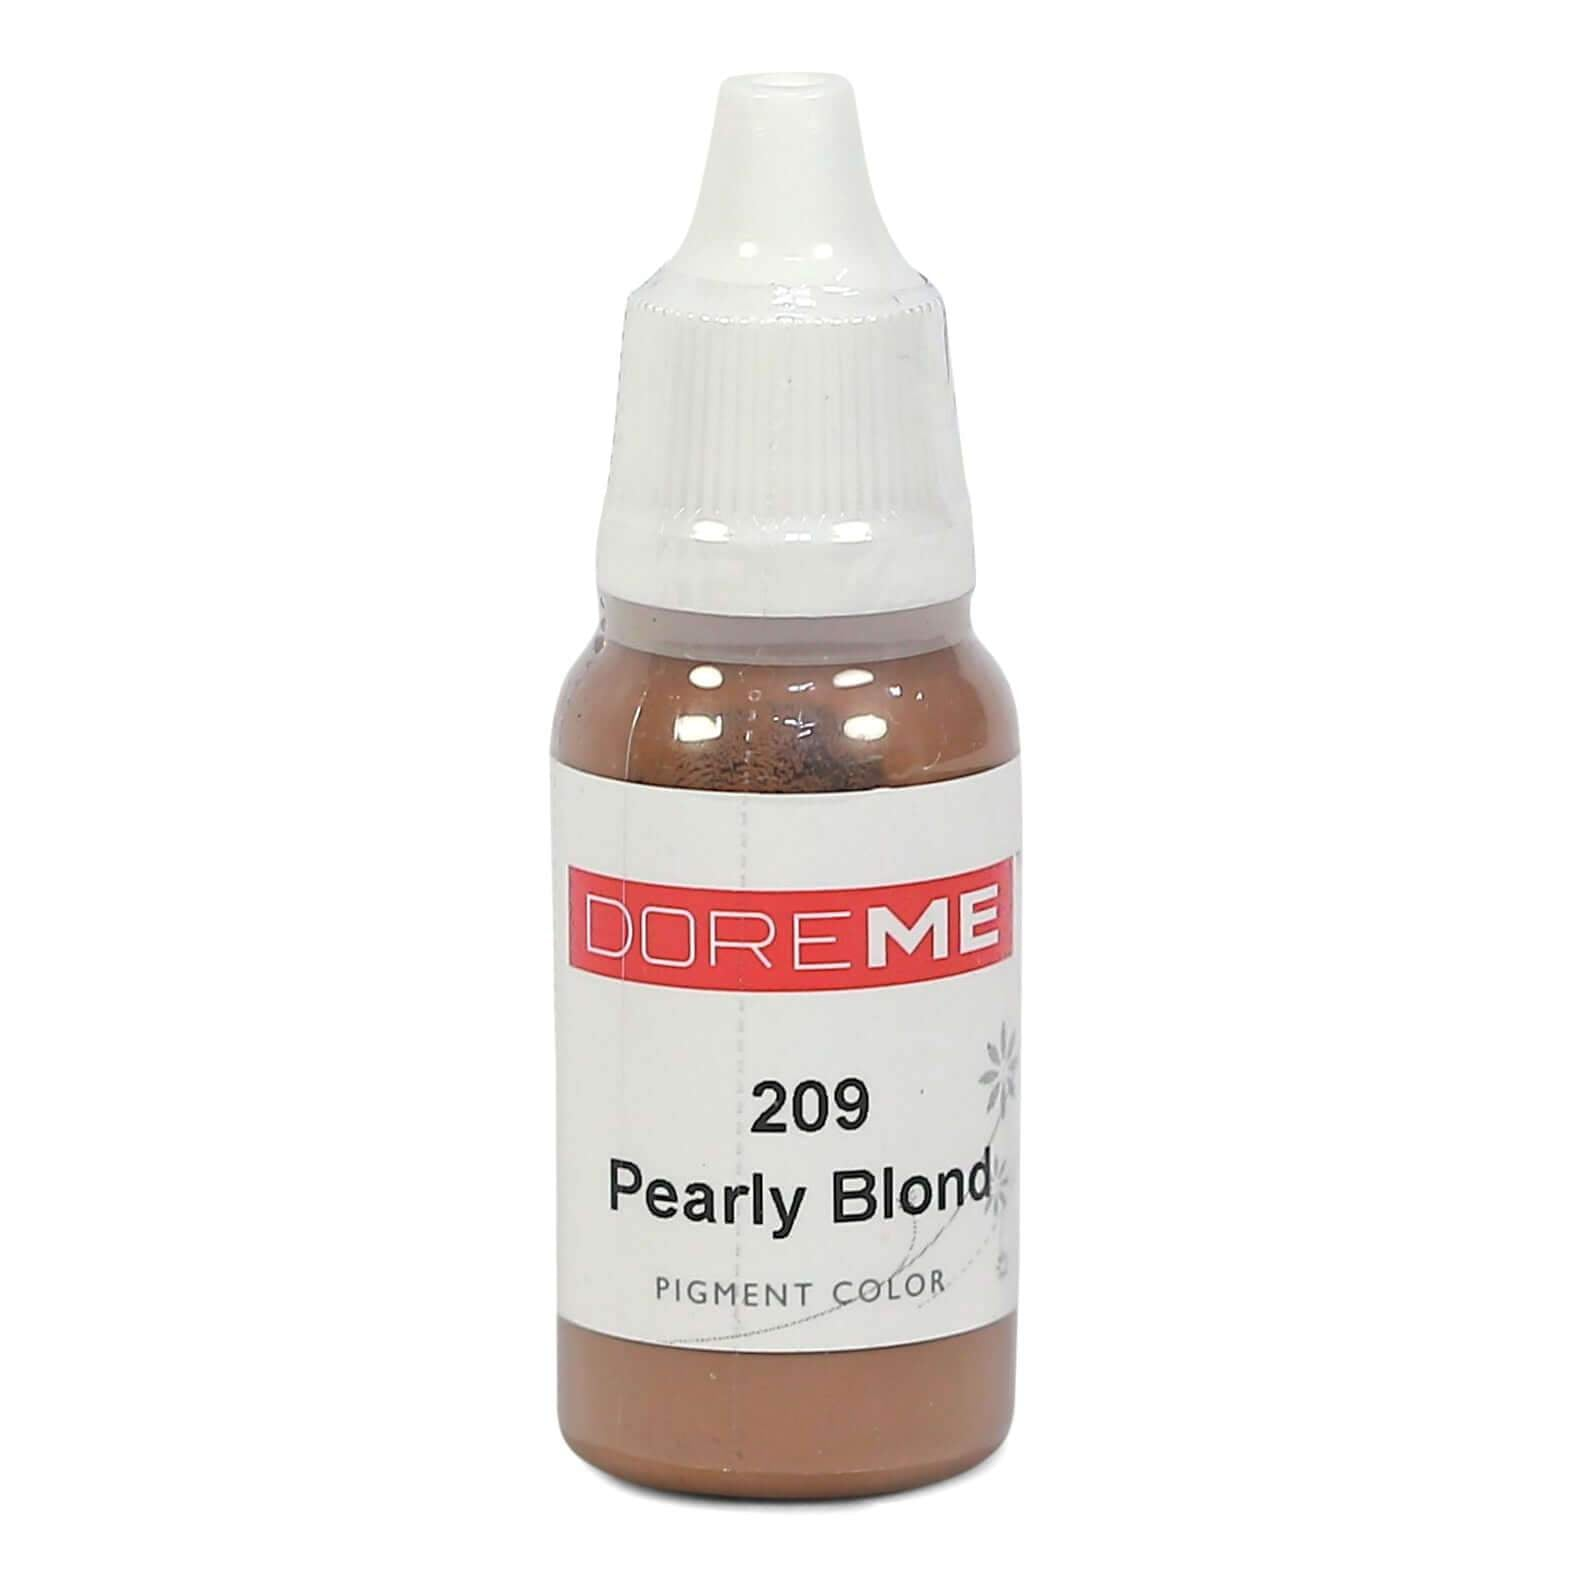 Permanent Makeup pigments Doreme Micropigmentation Eyebrow, Eyeliner, Lip Colours 209 Pearly Blond (c) - Beautiful Ink UK trade and wholesale supplier